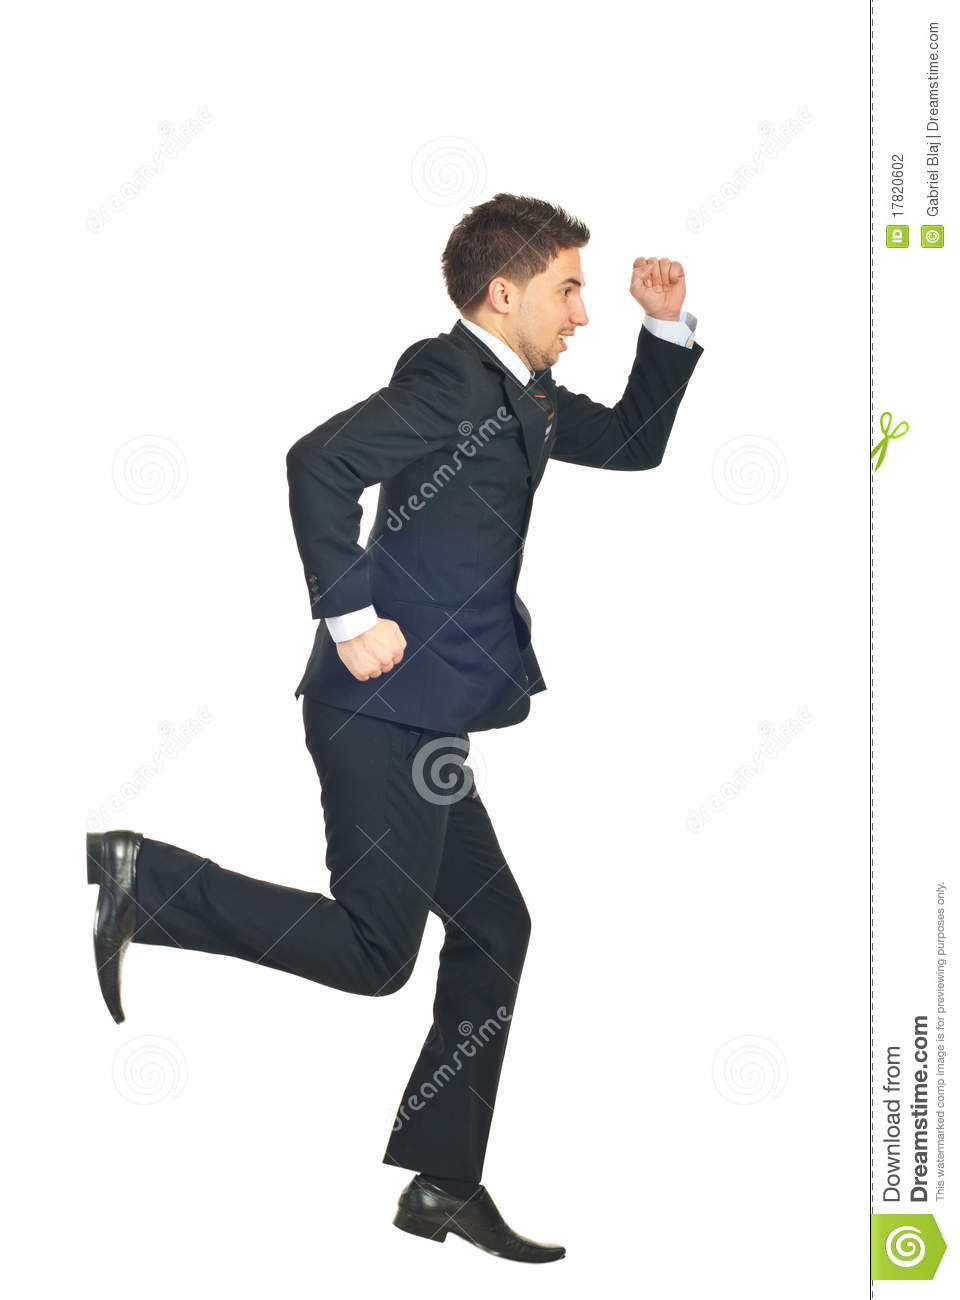 business-man-running-away-17820602.jpg